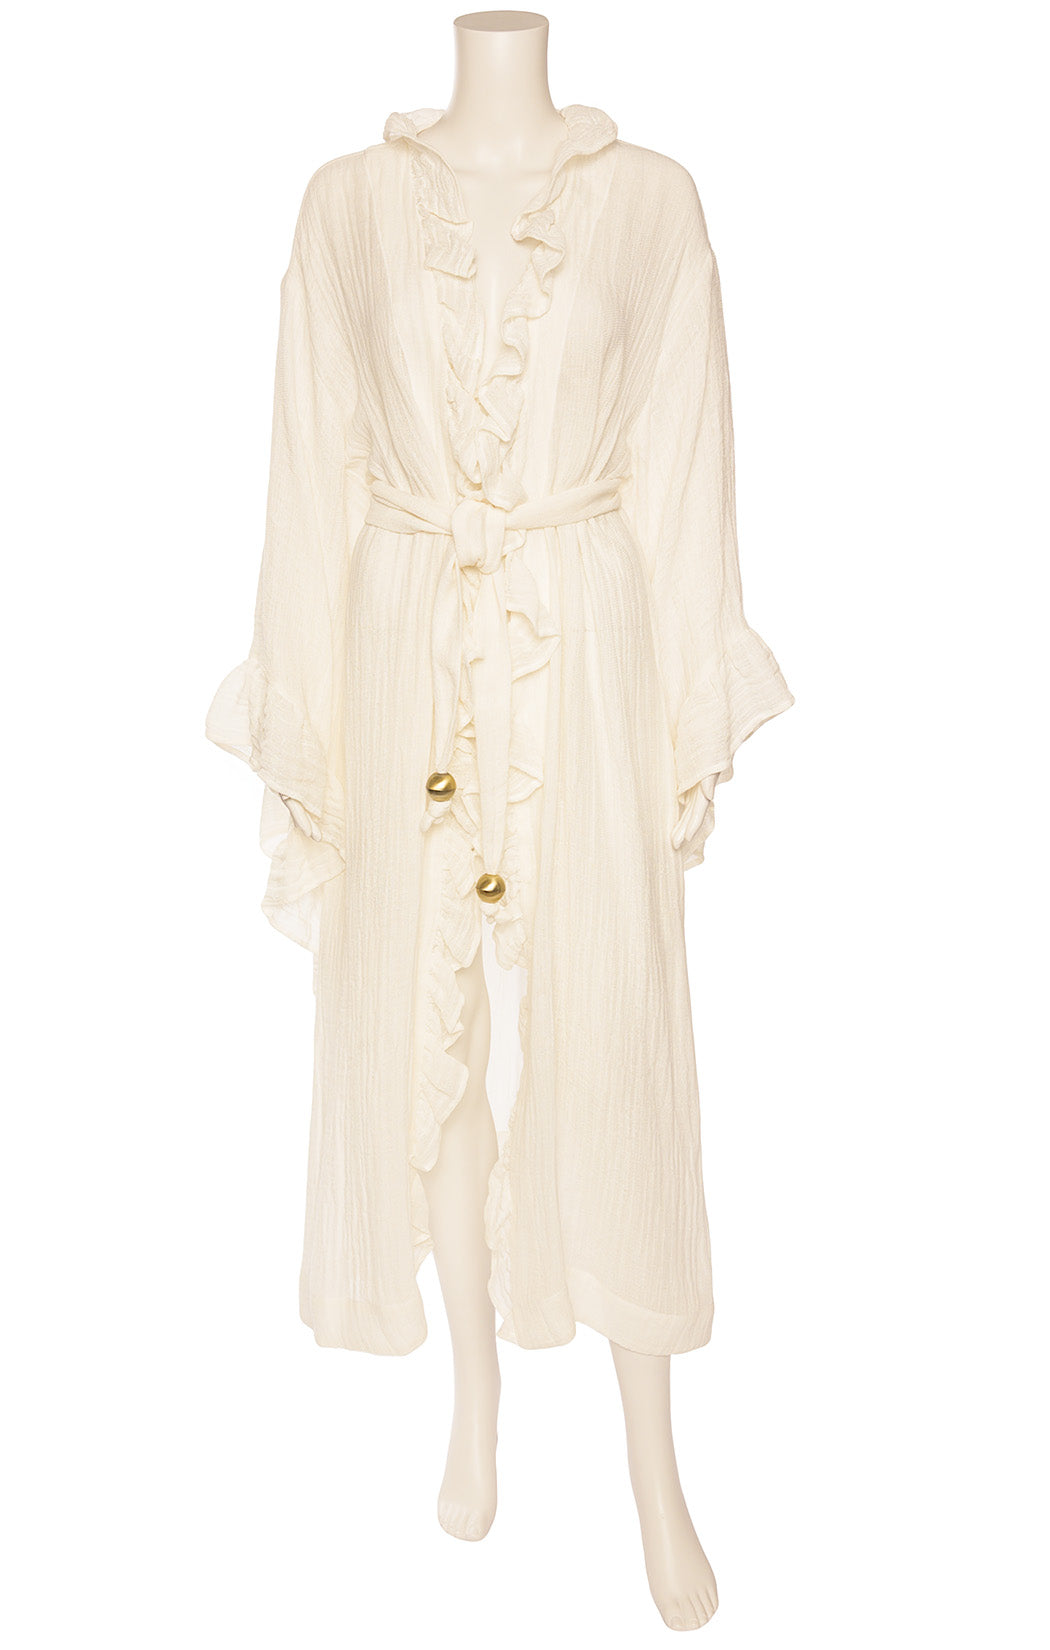 Front view of LISA MARIE FERNANDEZ  Robe/Coverup/dress Size: Medium